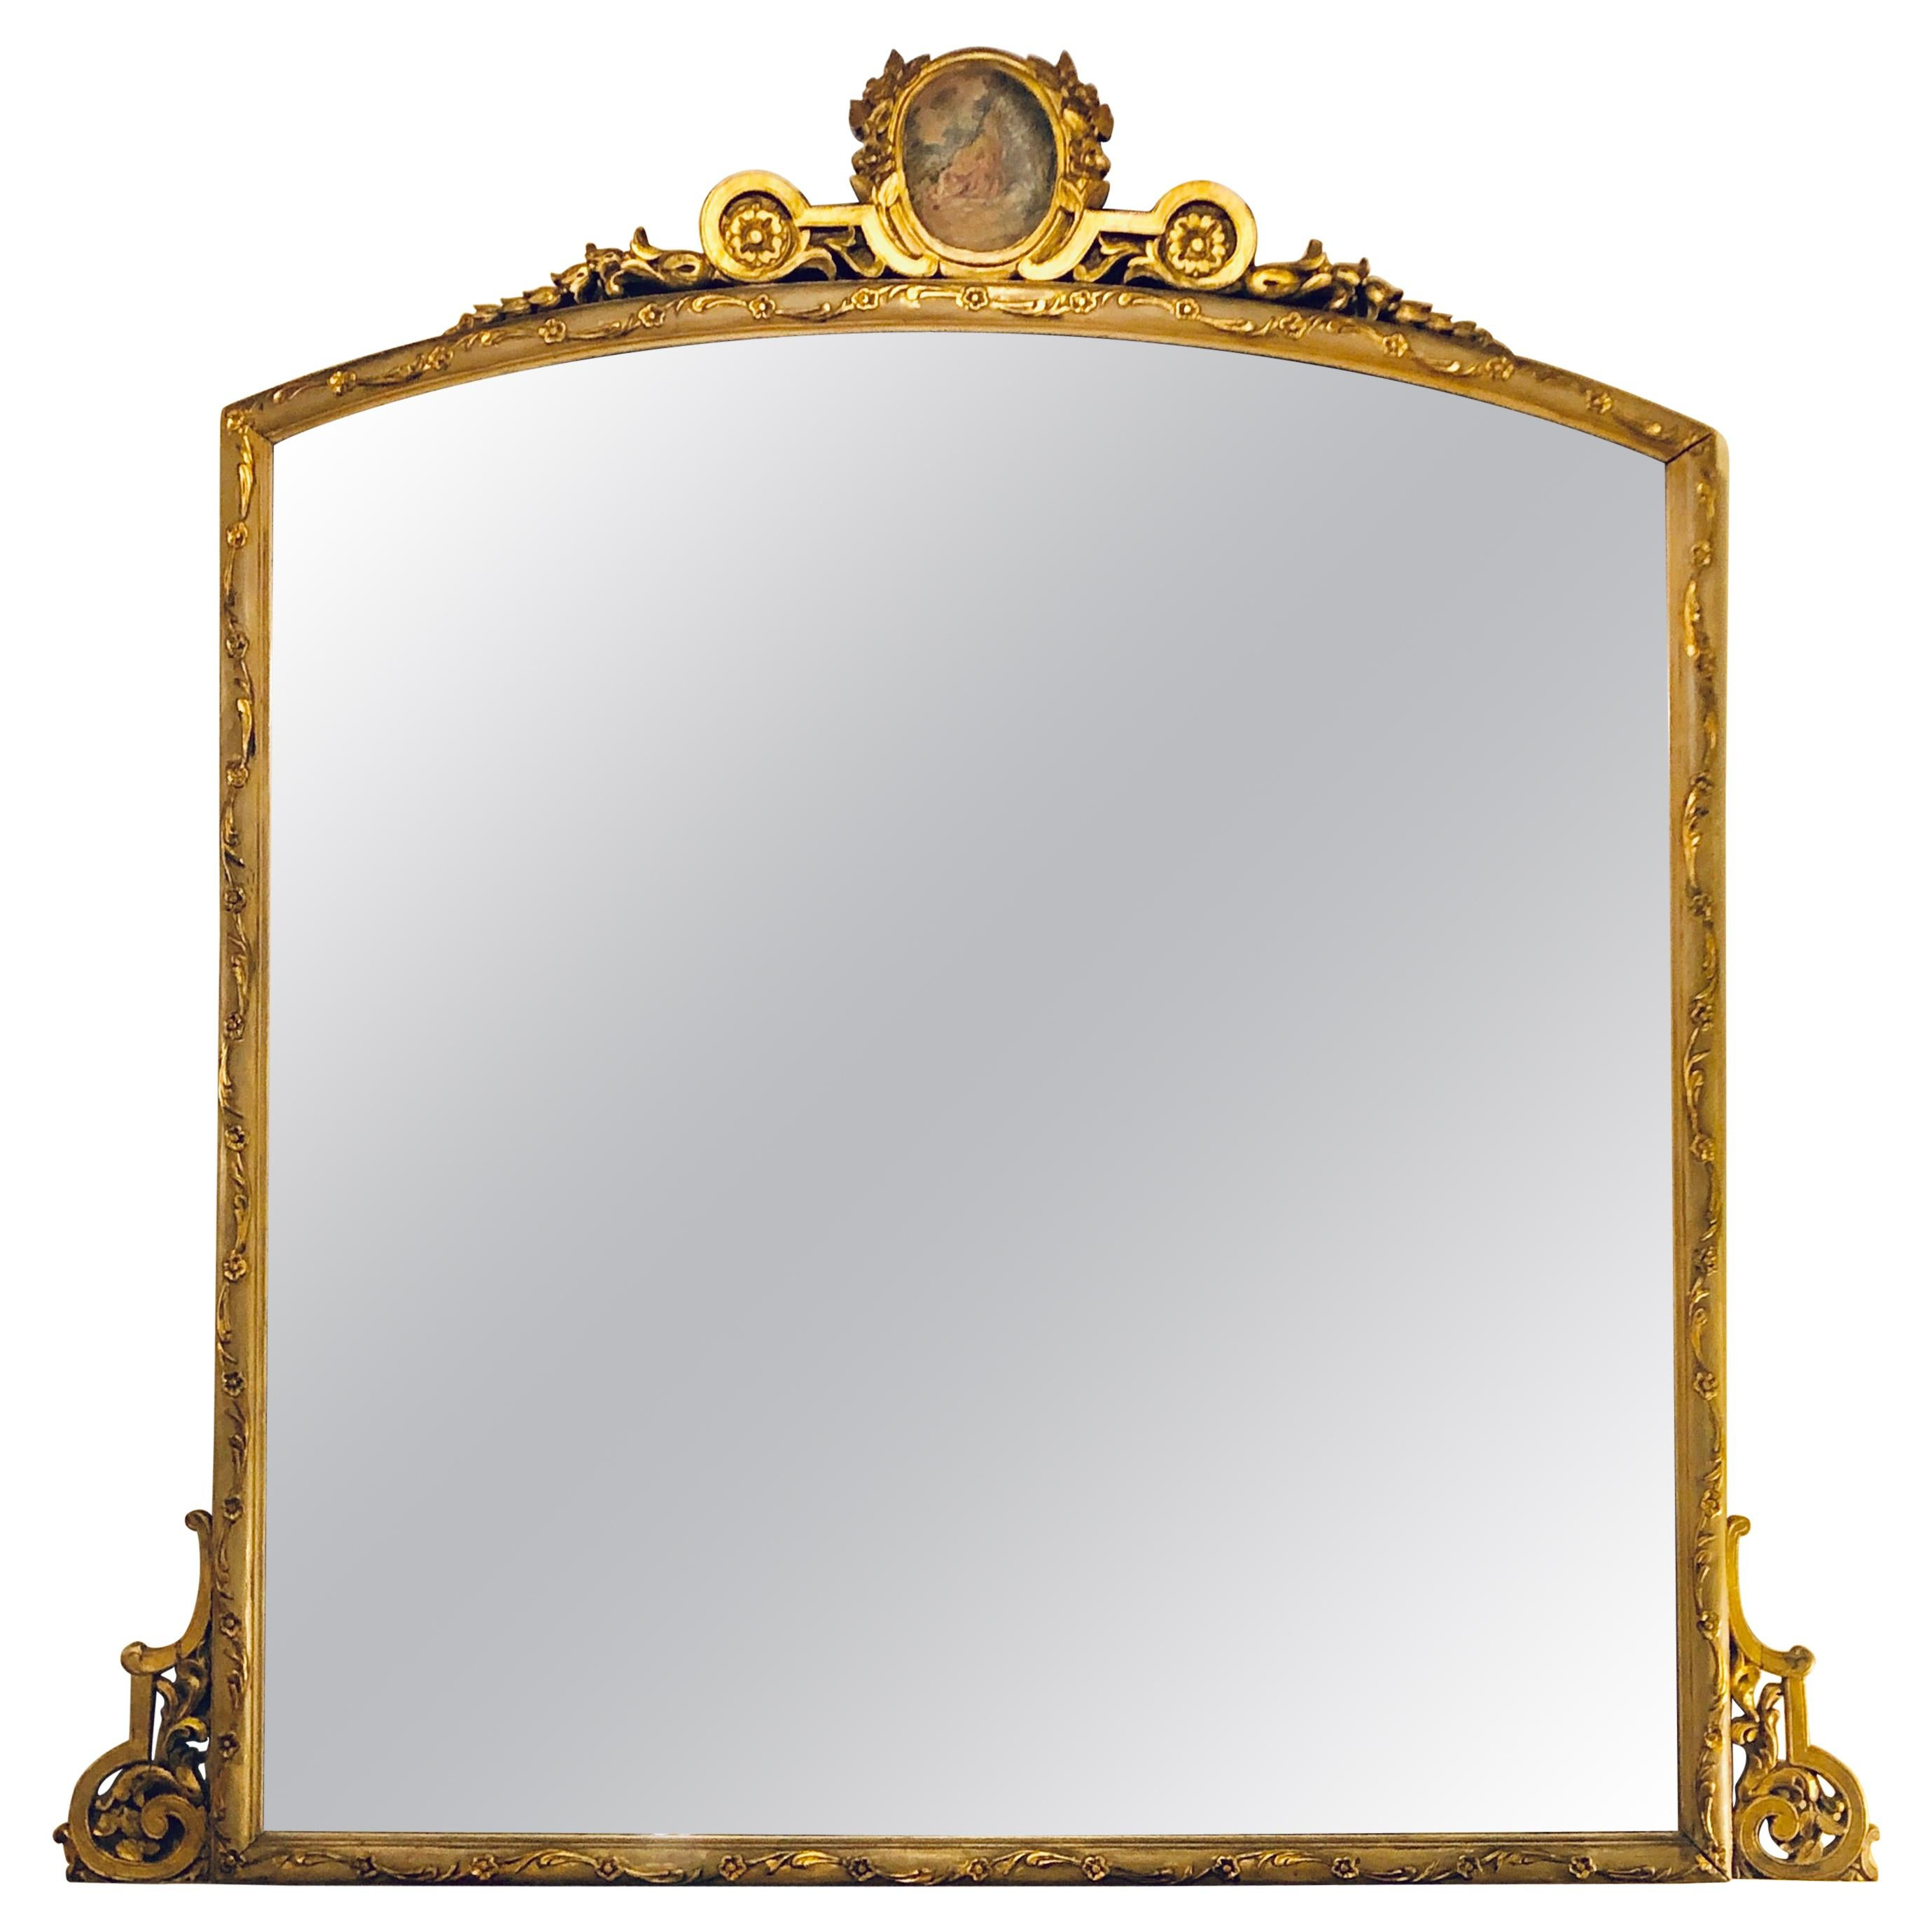 a6b6b90584c Antique and Vintage Mirrors - 15